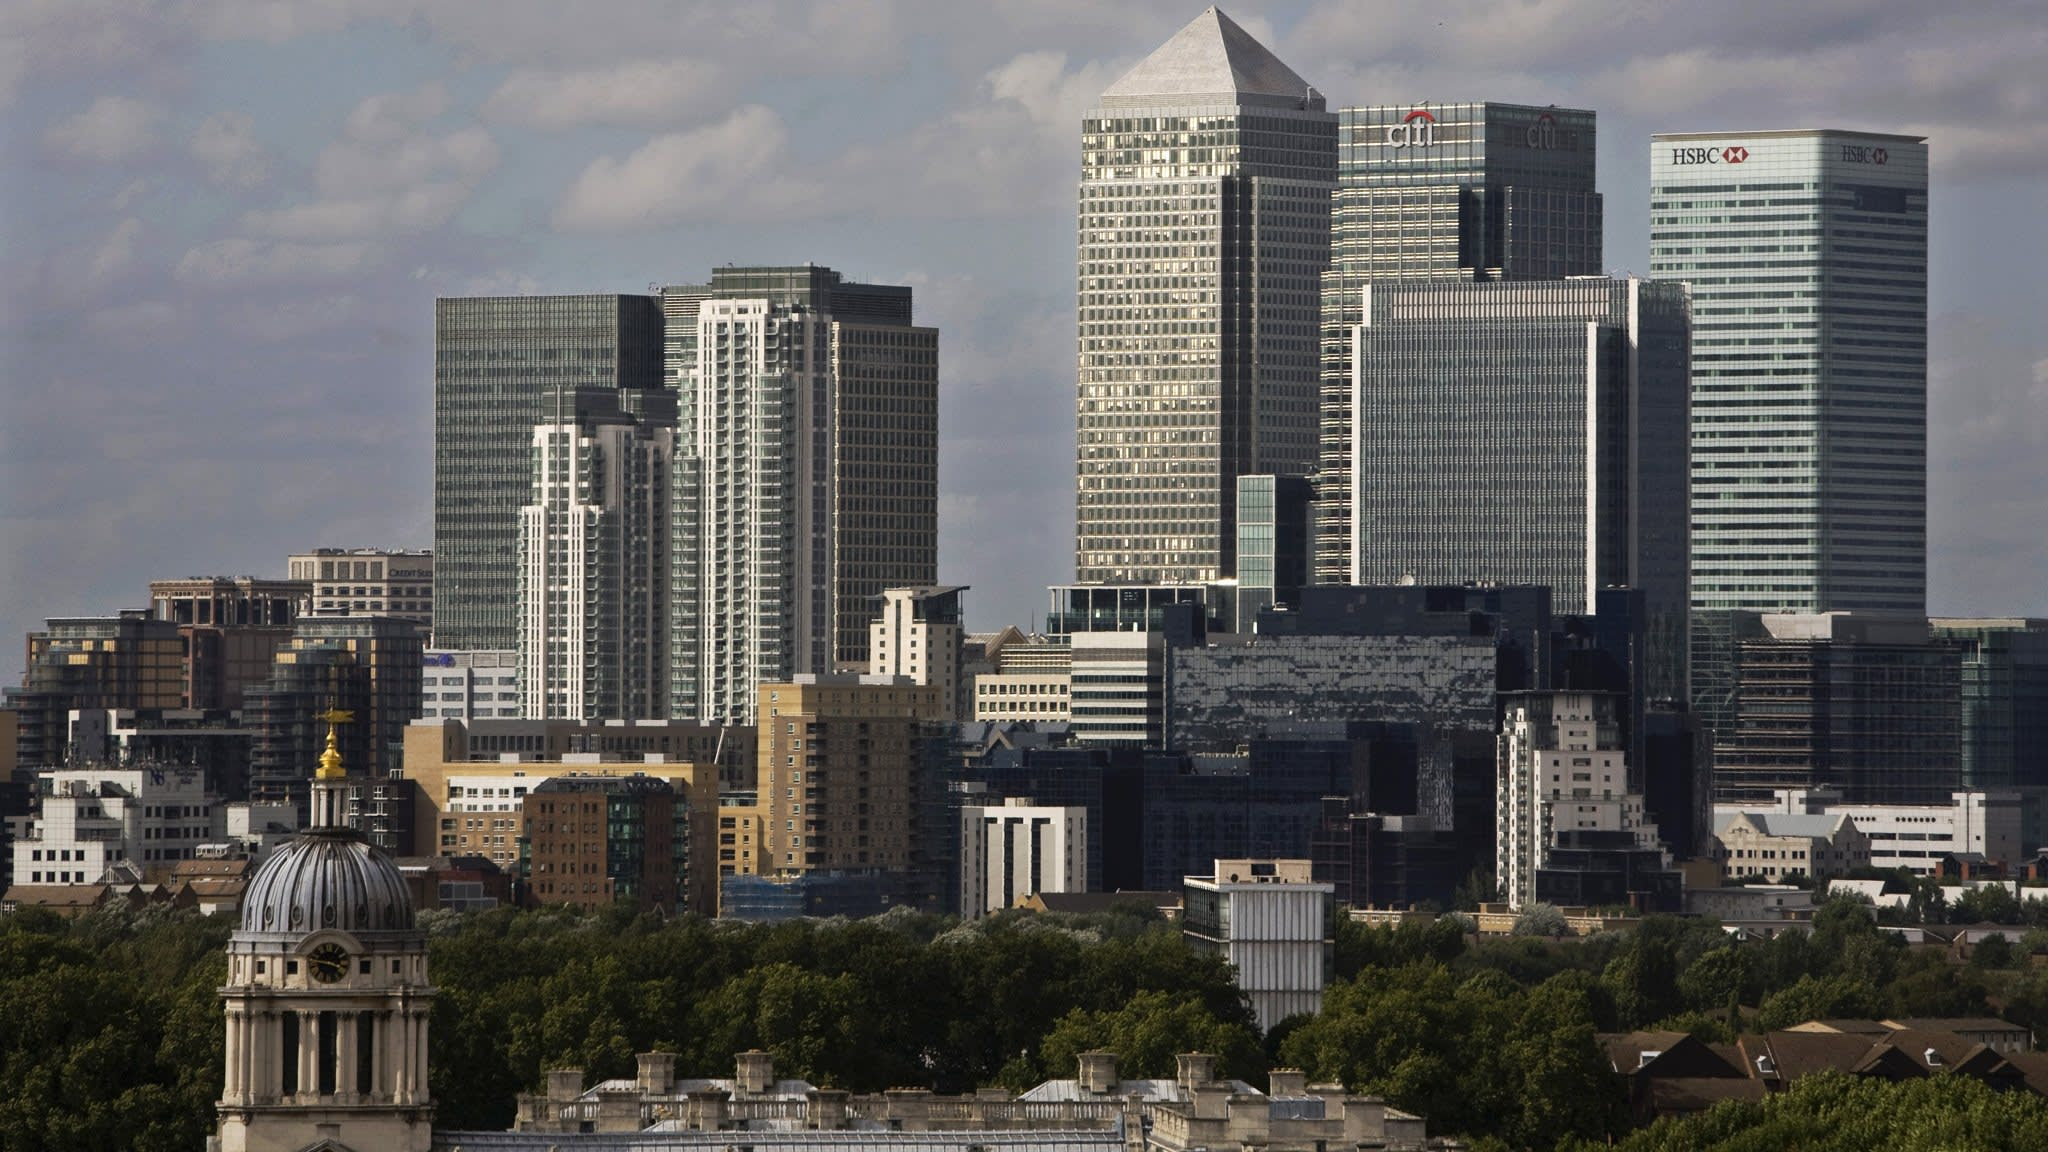 Europe's top 4 investment banks hire staff for busier times